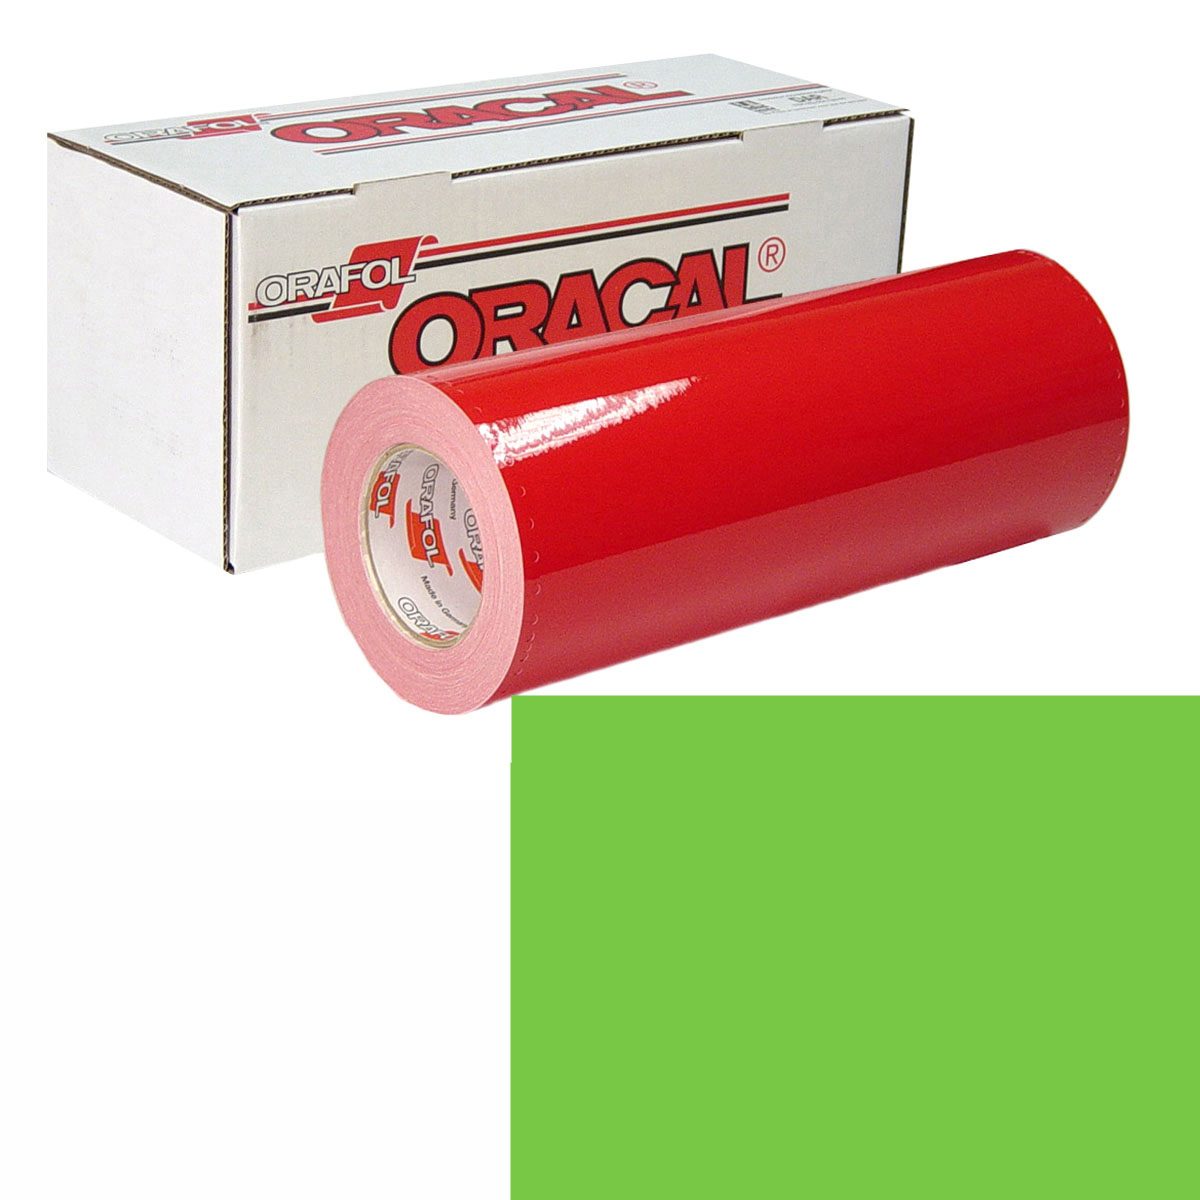 ORACAL 951 Unp 24In X 10Yd 601 Lime Green